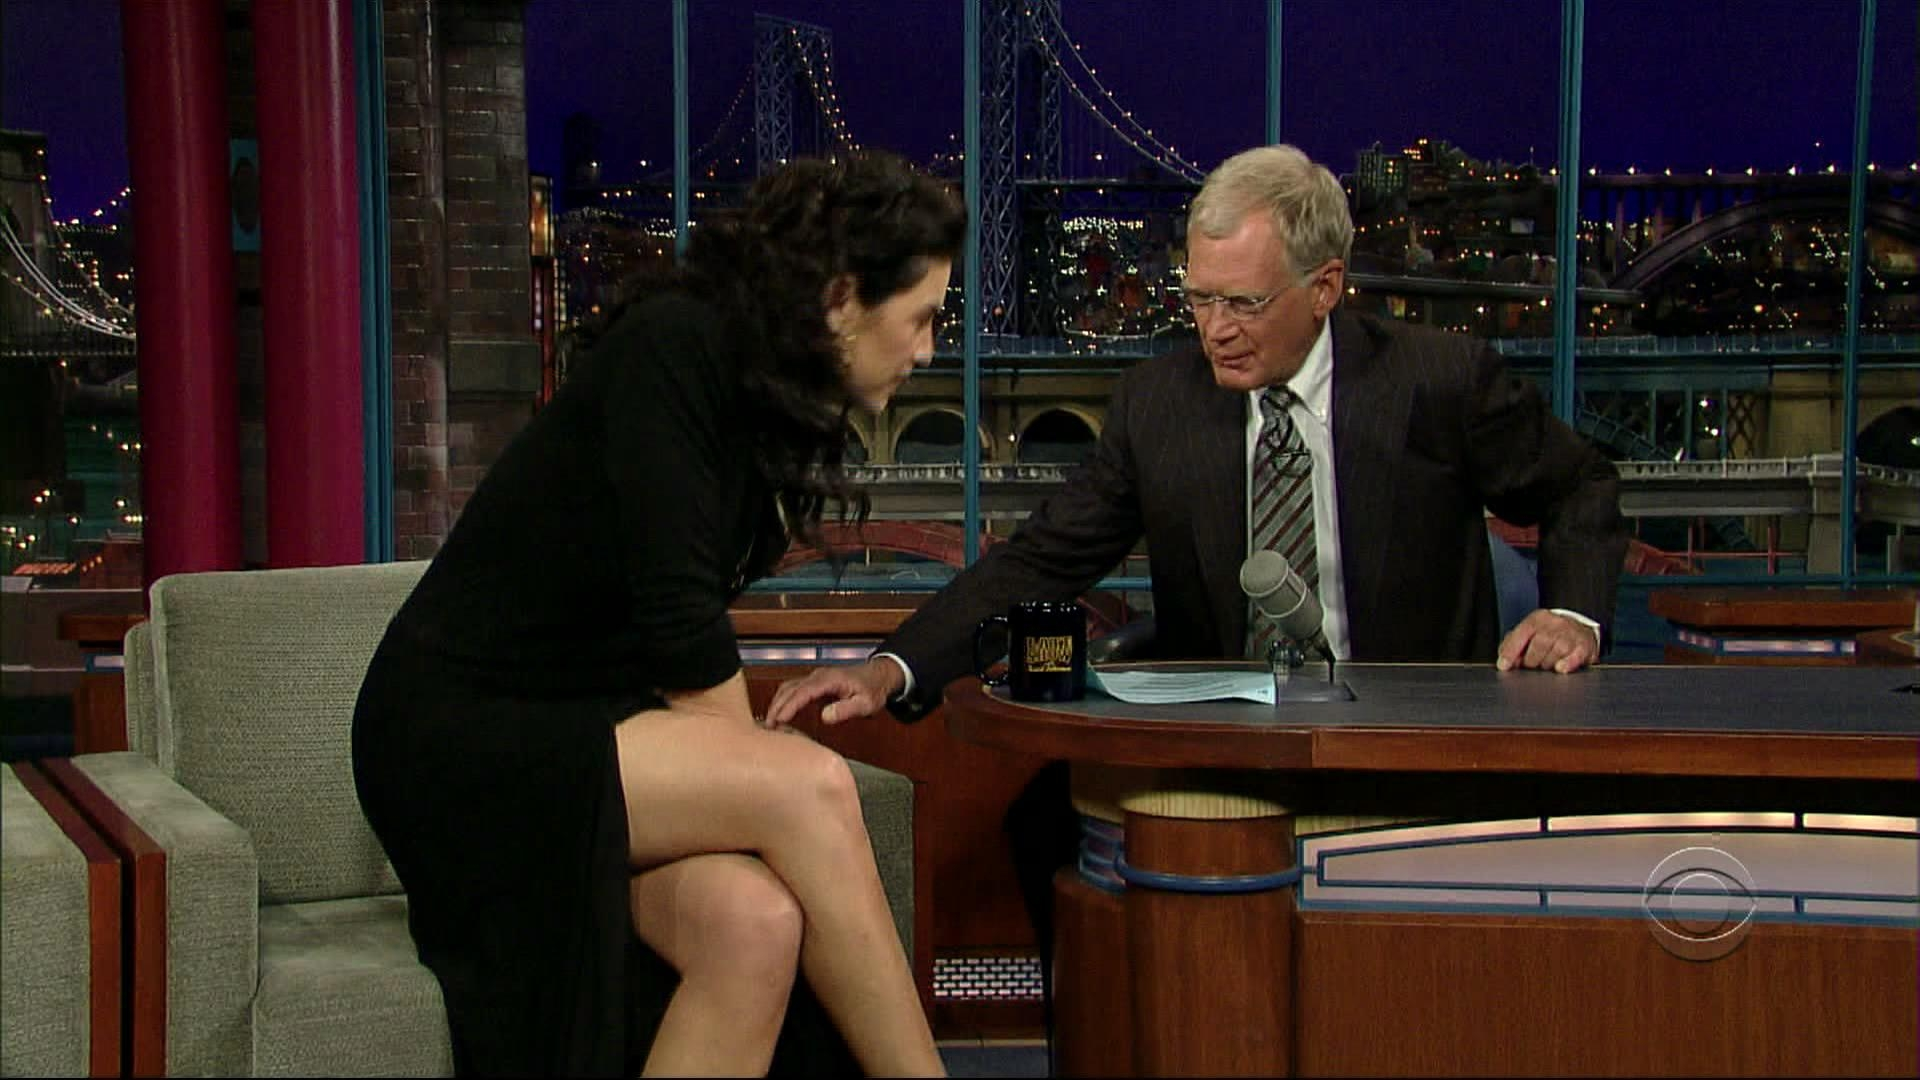 Julianna Margulies Pantyhose